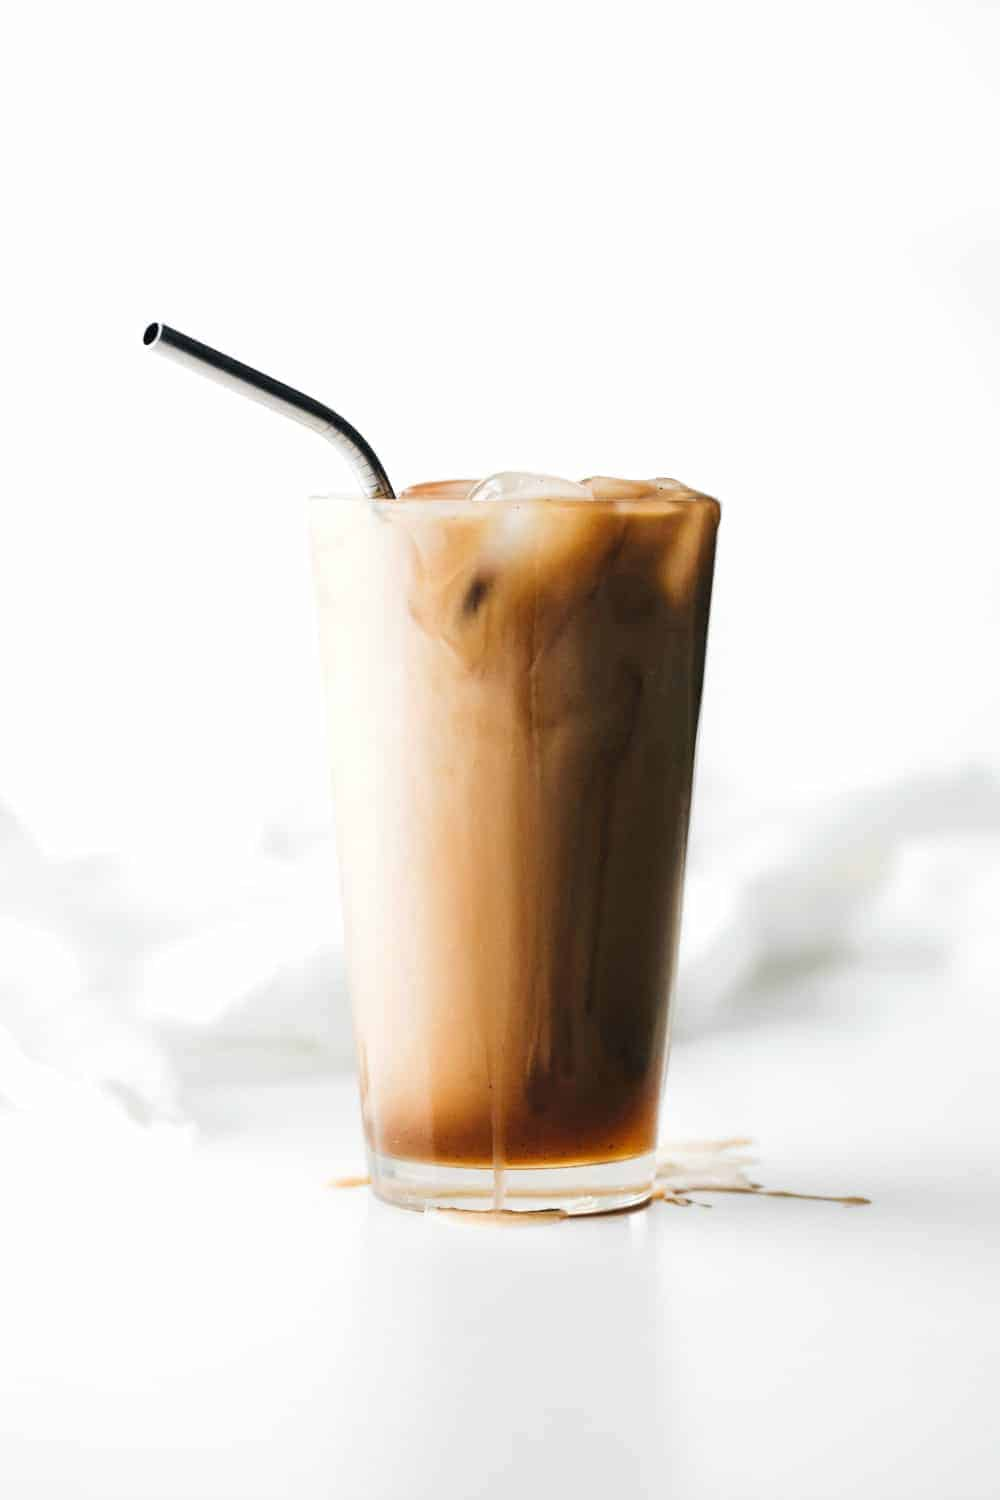 Glass of vanilla iced coffee with a straw